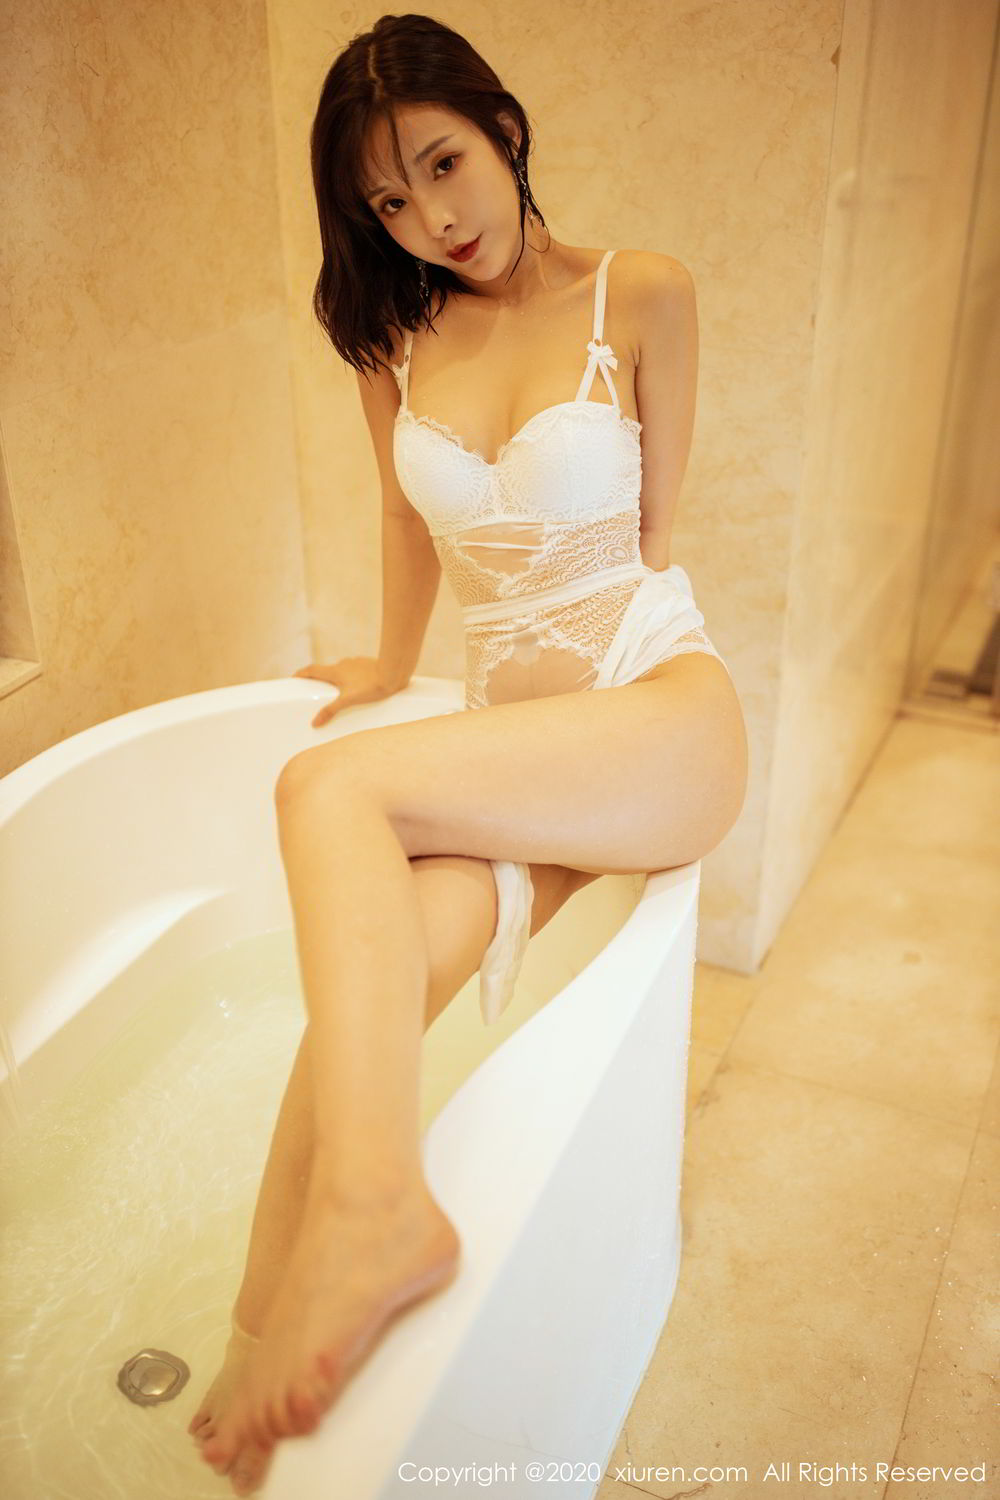 [XiuRen] Vol.2158 Chen Xiao Miao 37P, Bathroom, Chen Xiao Miao, Tall, Wet, Xiuren